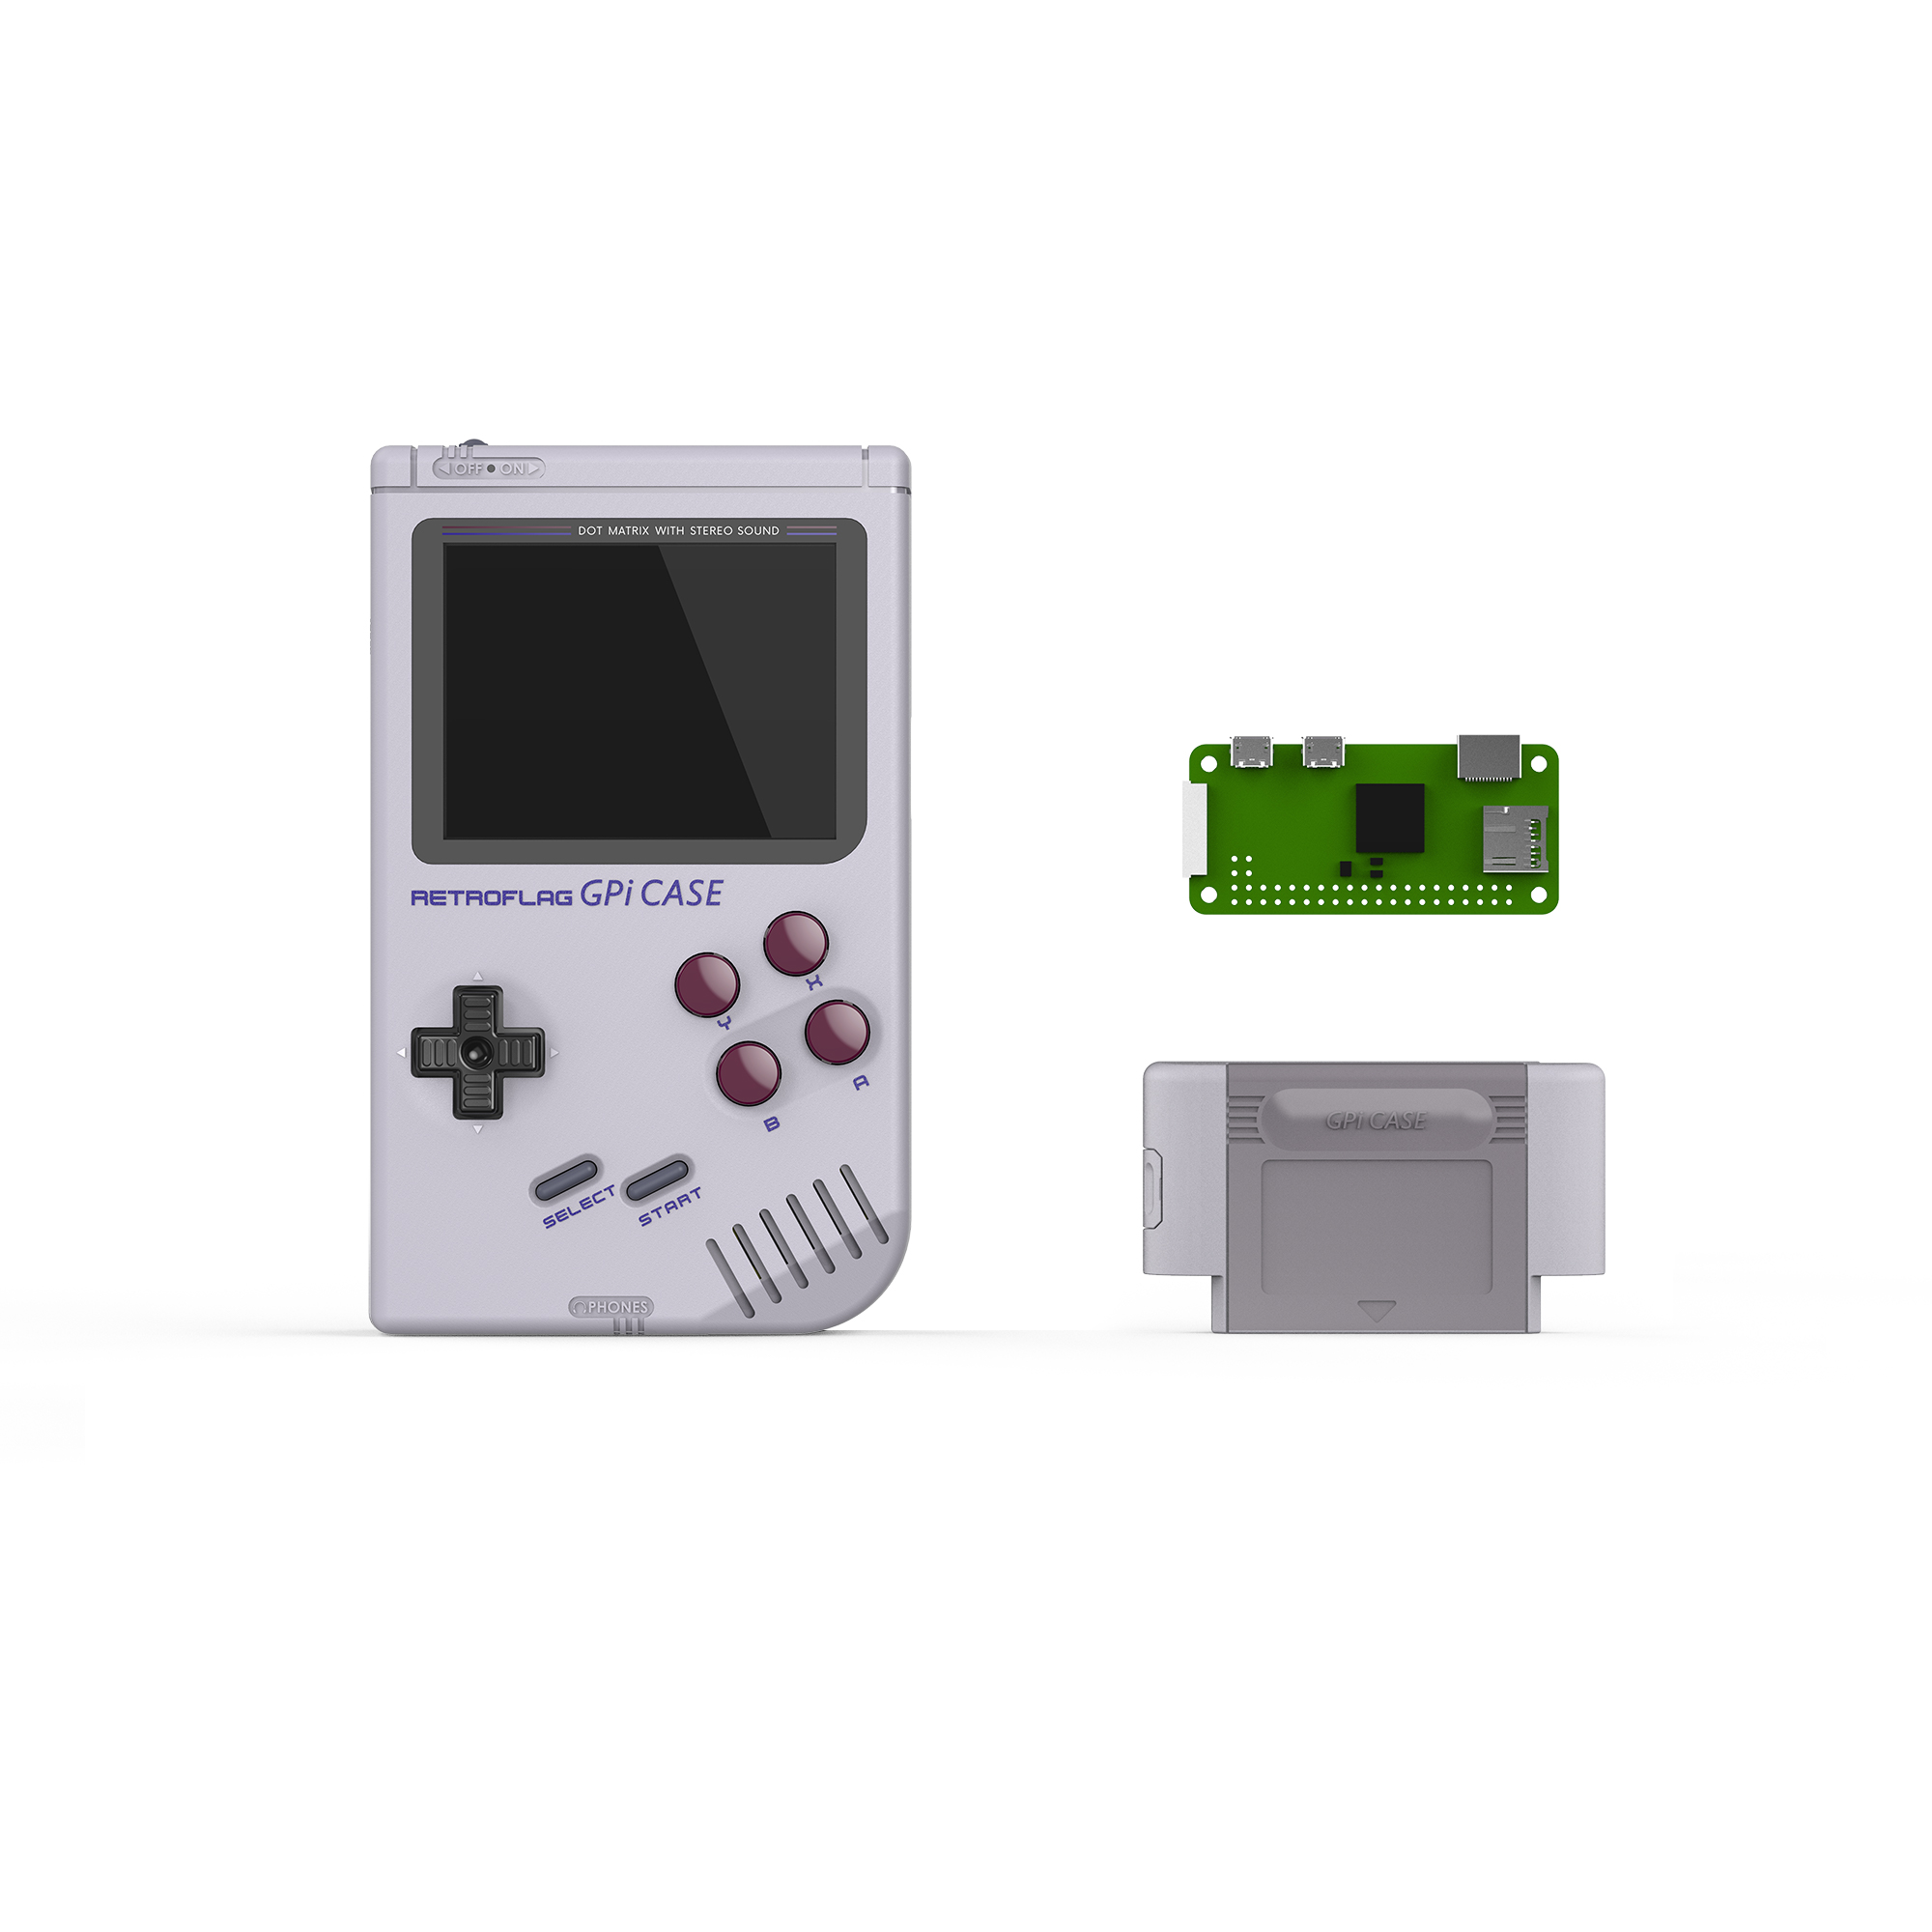 In stock! Retroflag GPi CASE for Raspberry Pi Zero and Zero W with Safe Shutdown